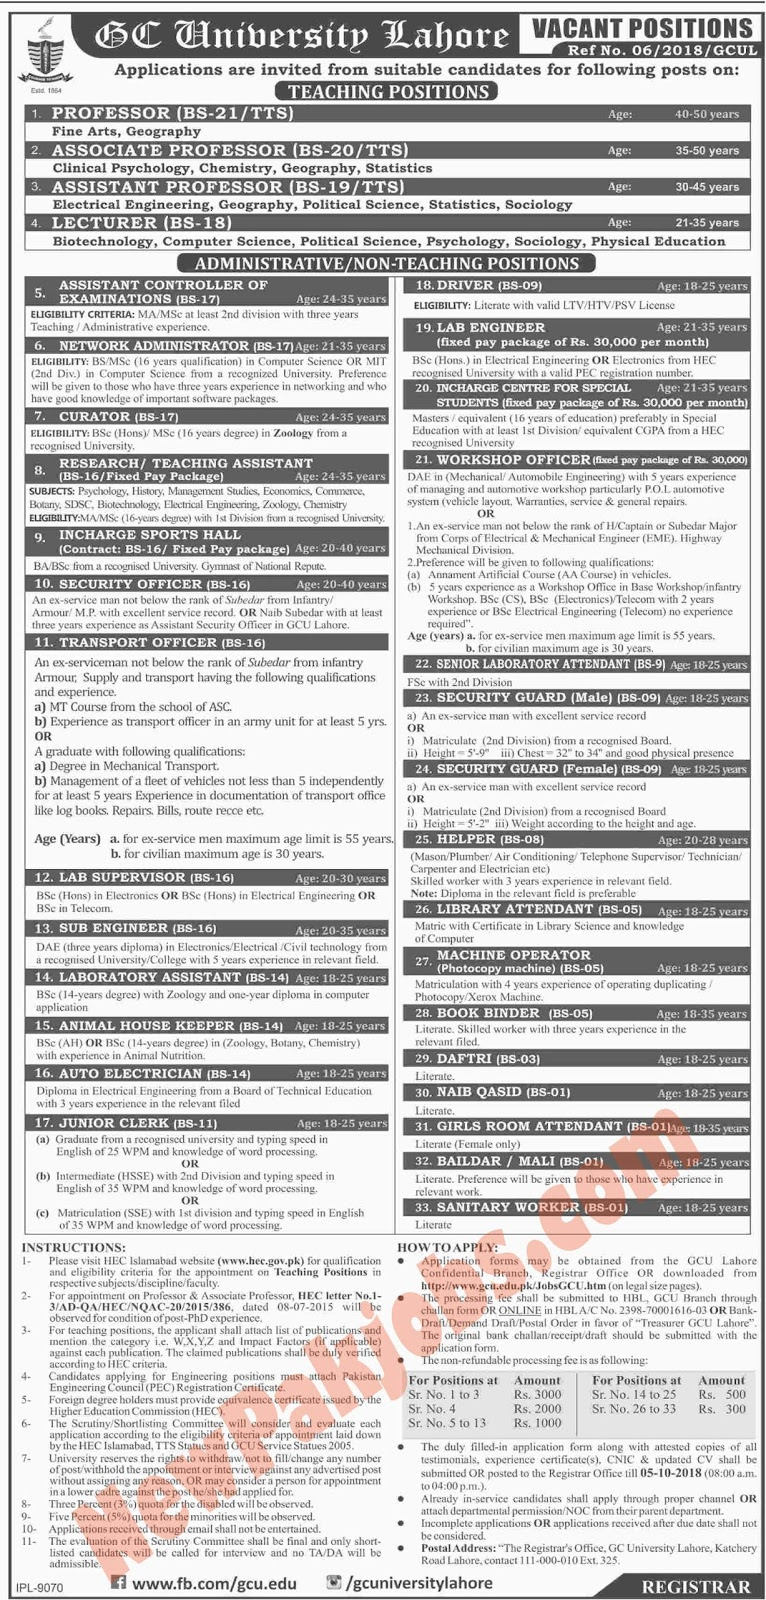 Govt Vacancies in GC University for the month of September 2018